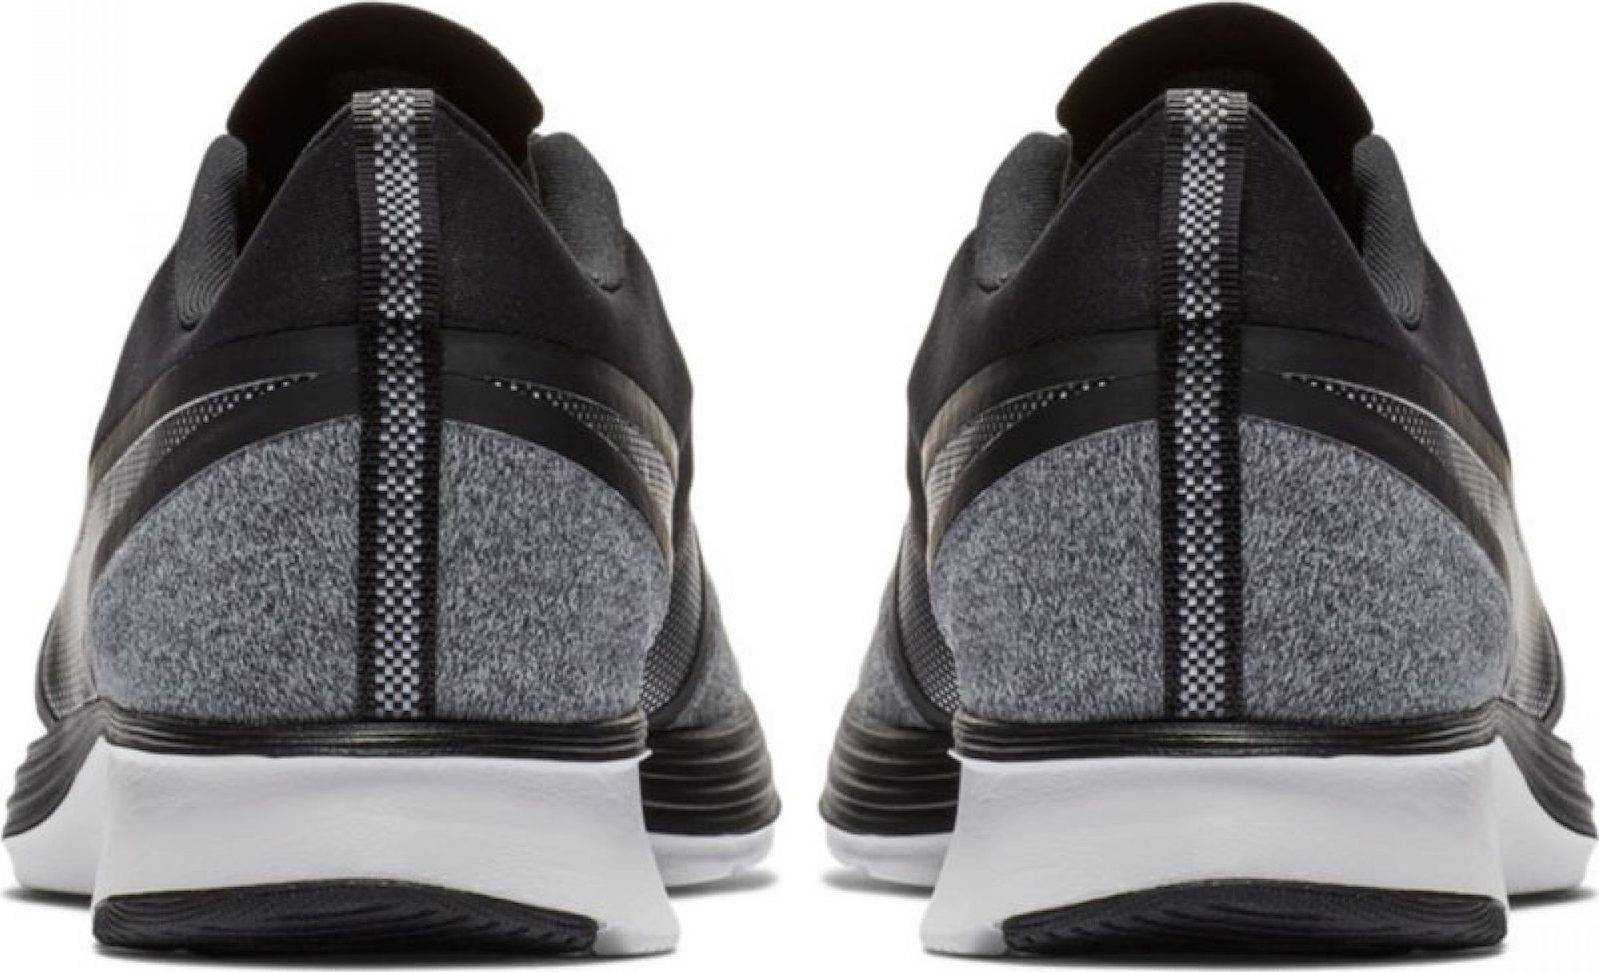 NIKE Кроссовки мужские Zoom Strike 2 Shield, grey, black. Фото N3